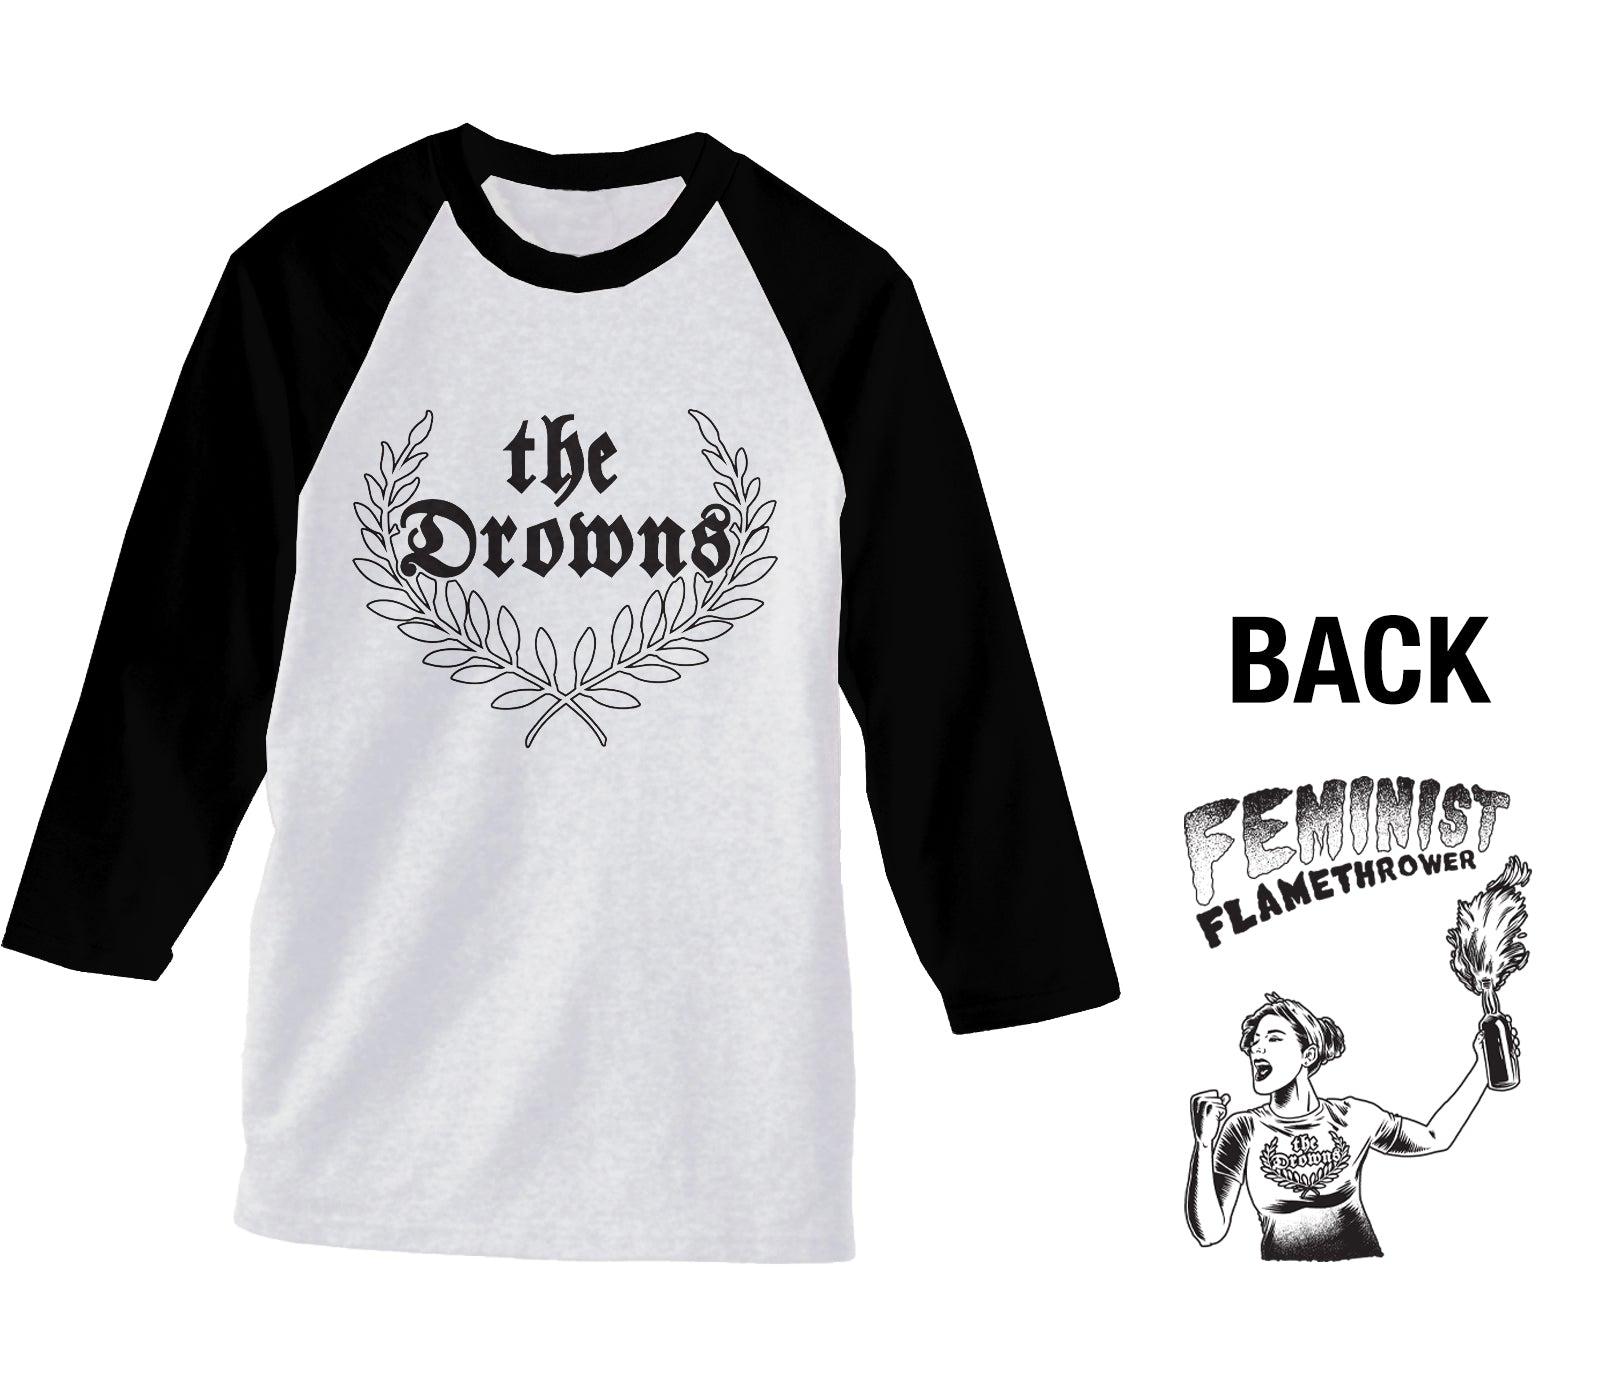 The Drowns - Feminist Flamethrower - Black & White - Baseball Tee